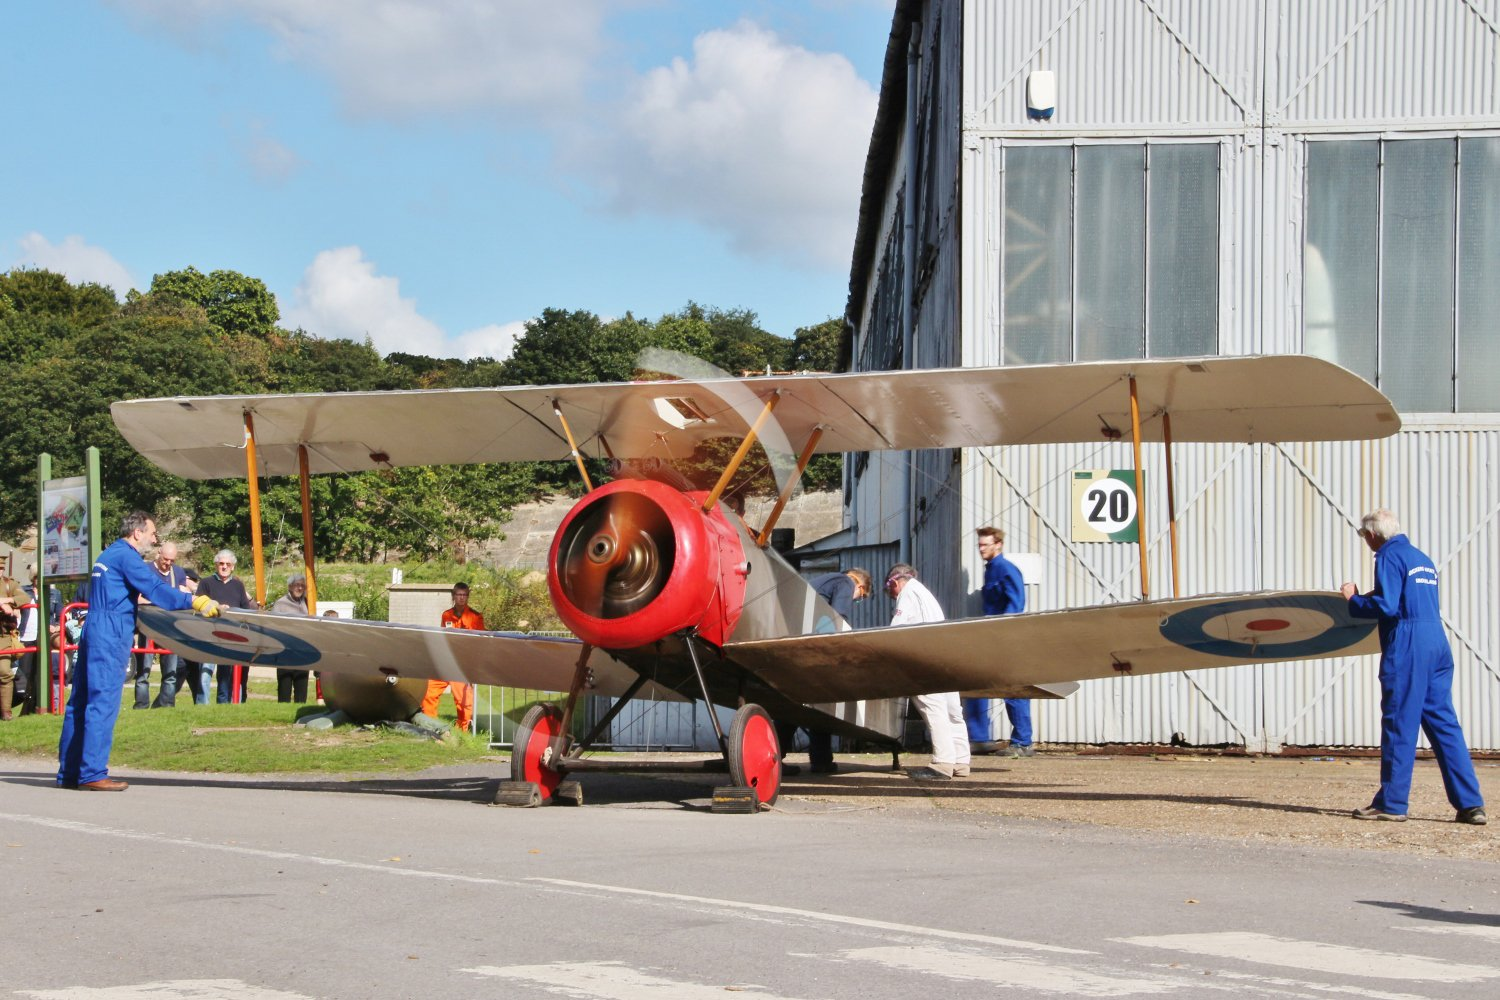 Join us on Sunday as we commemorate Brooklands' role in the Great War - WW1 Centenary